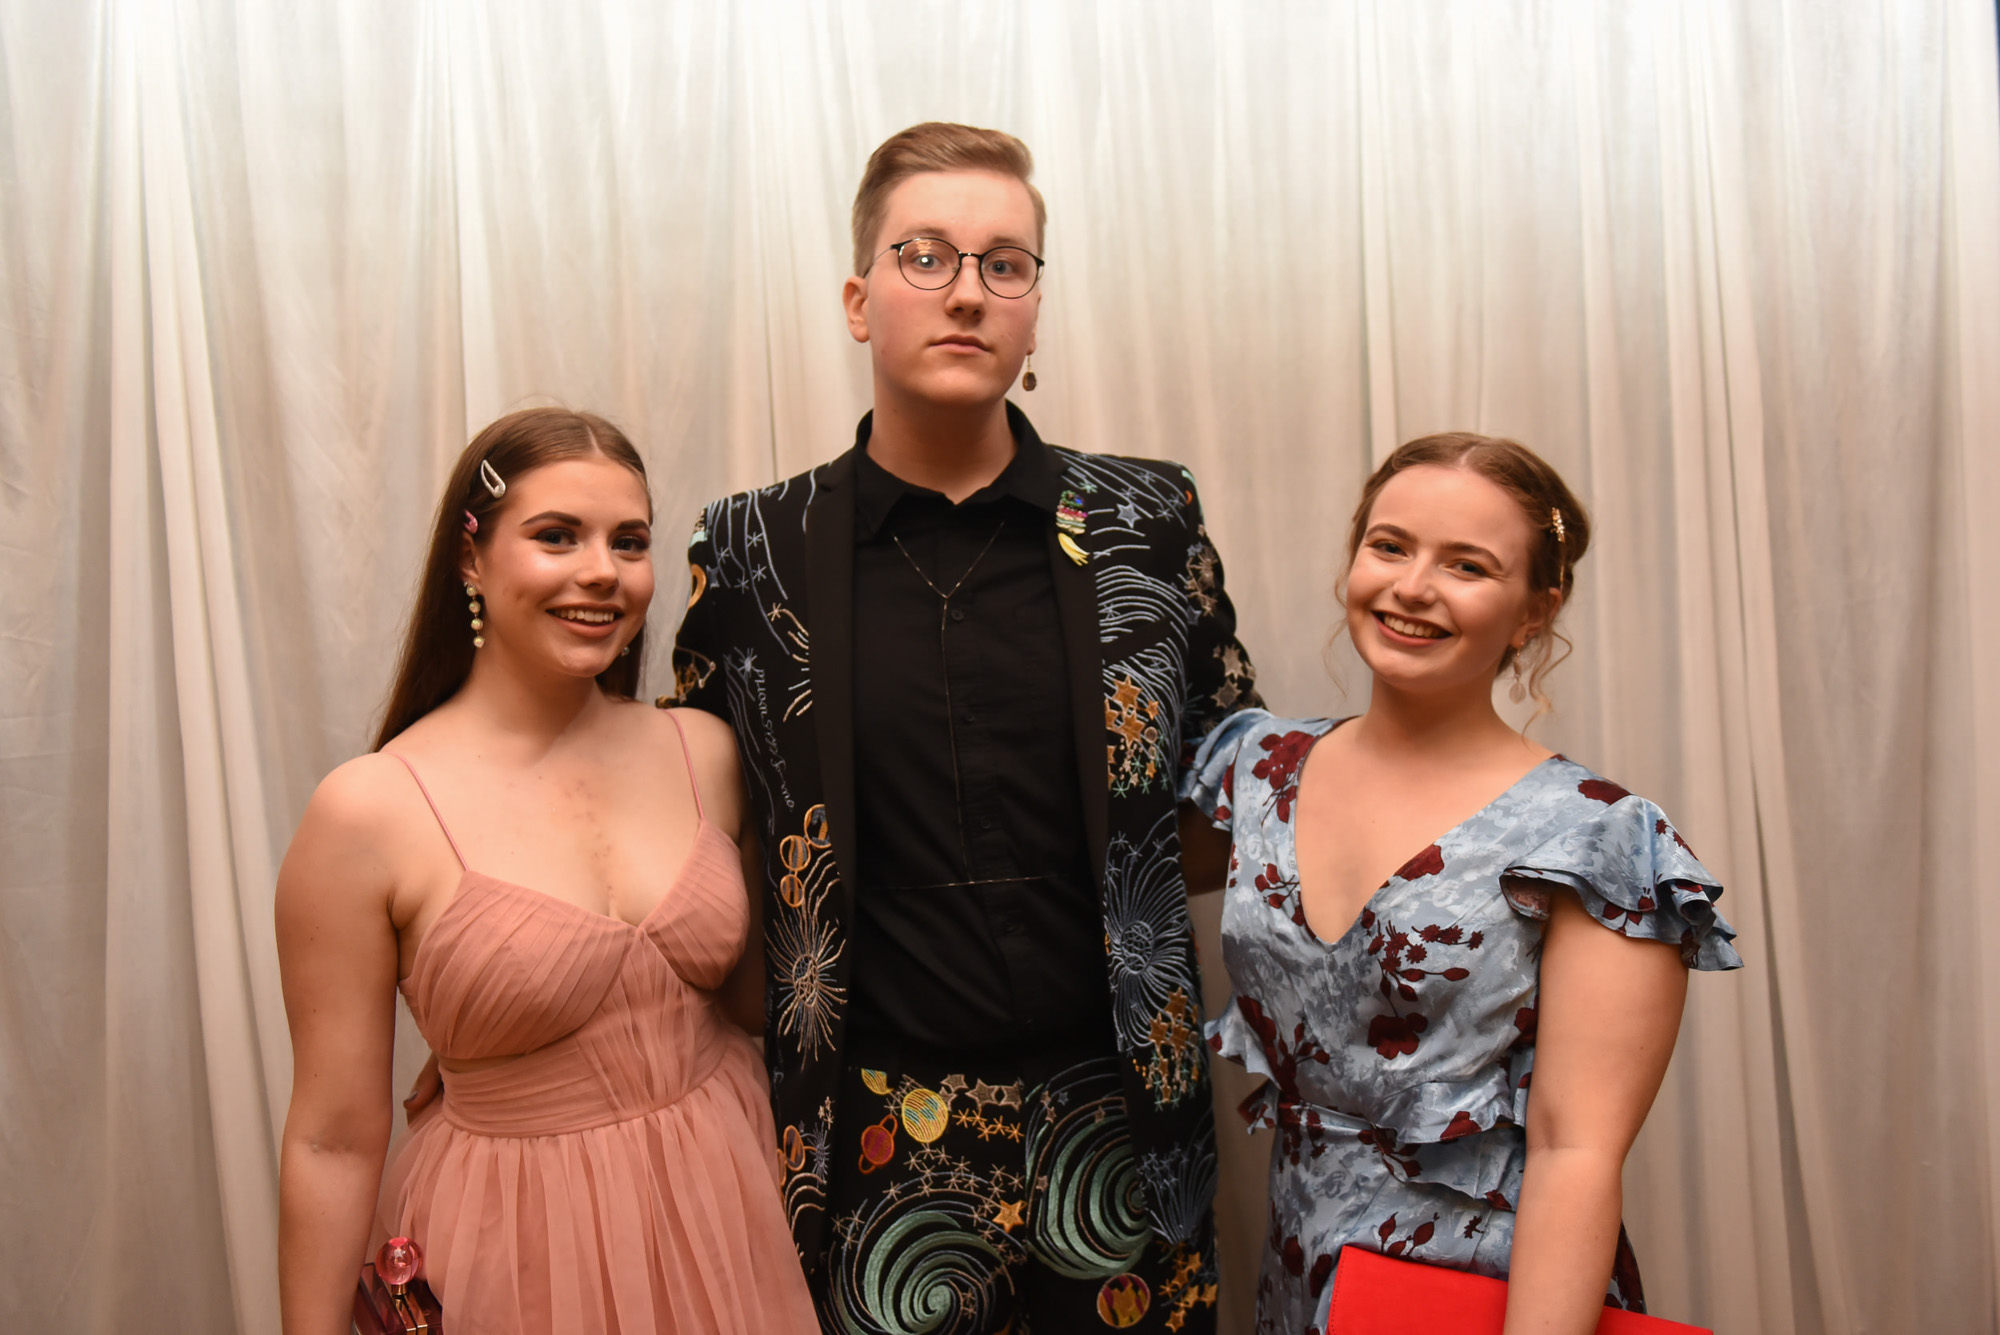 UCLAN_MT_BALL_2019_35.jpg